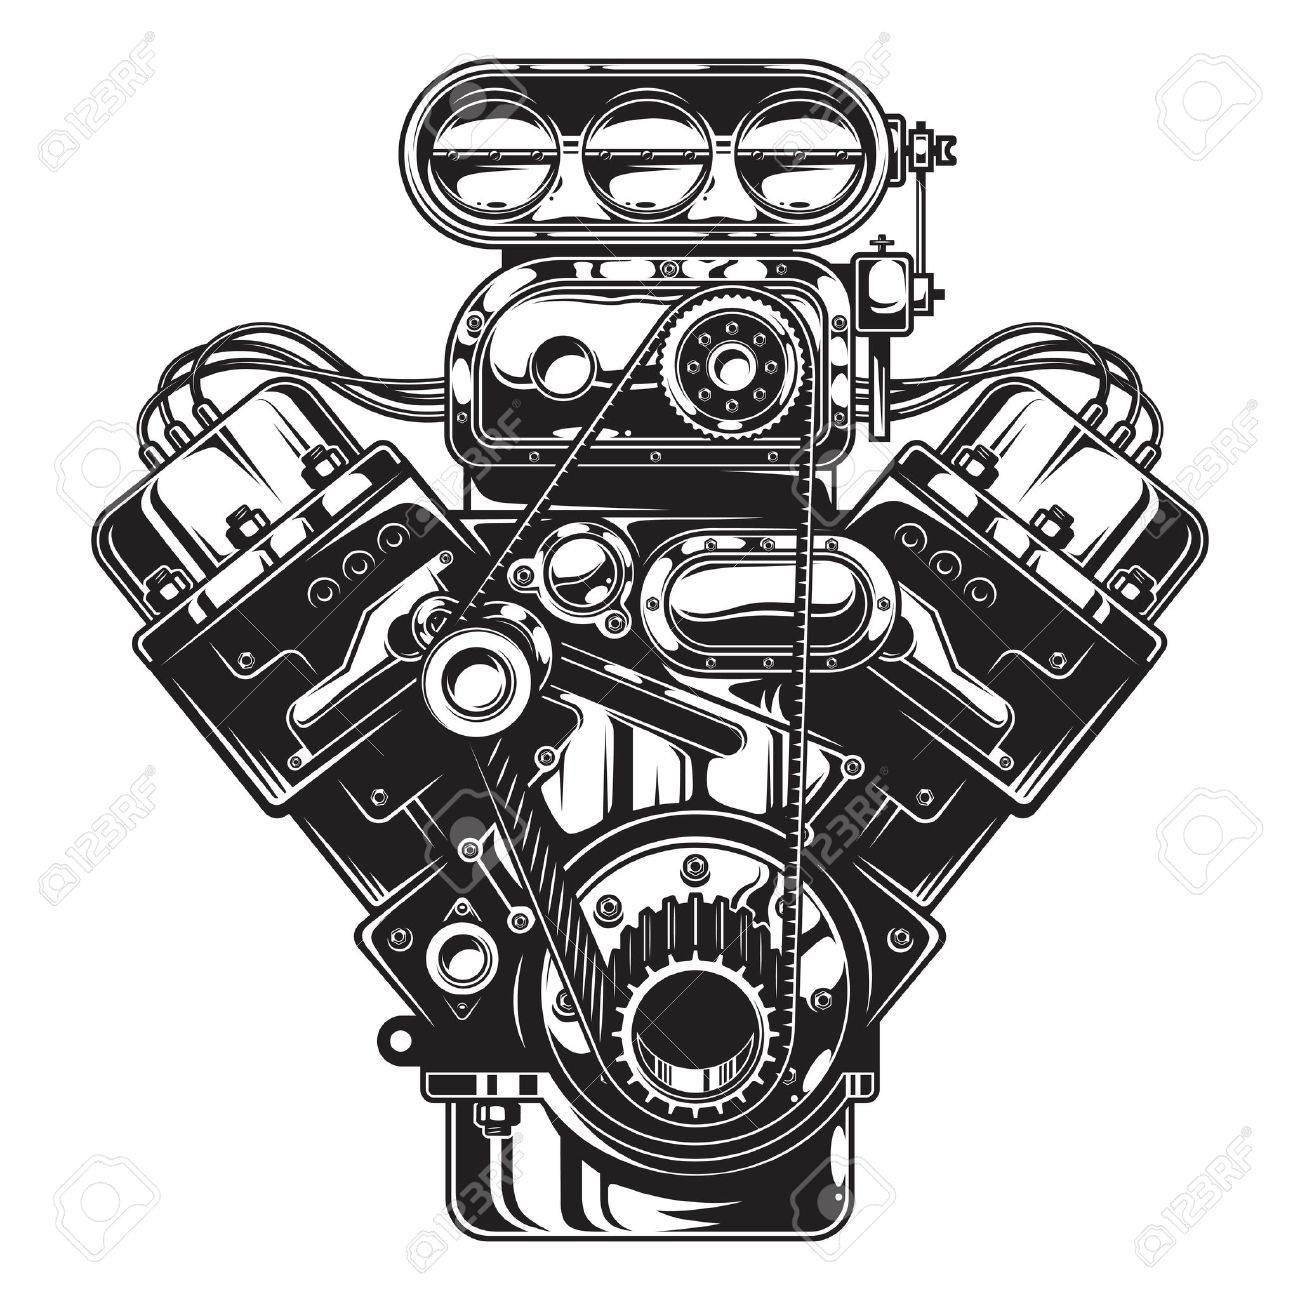 Car Engine Clipart Black And White.